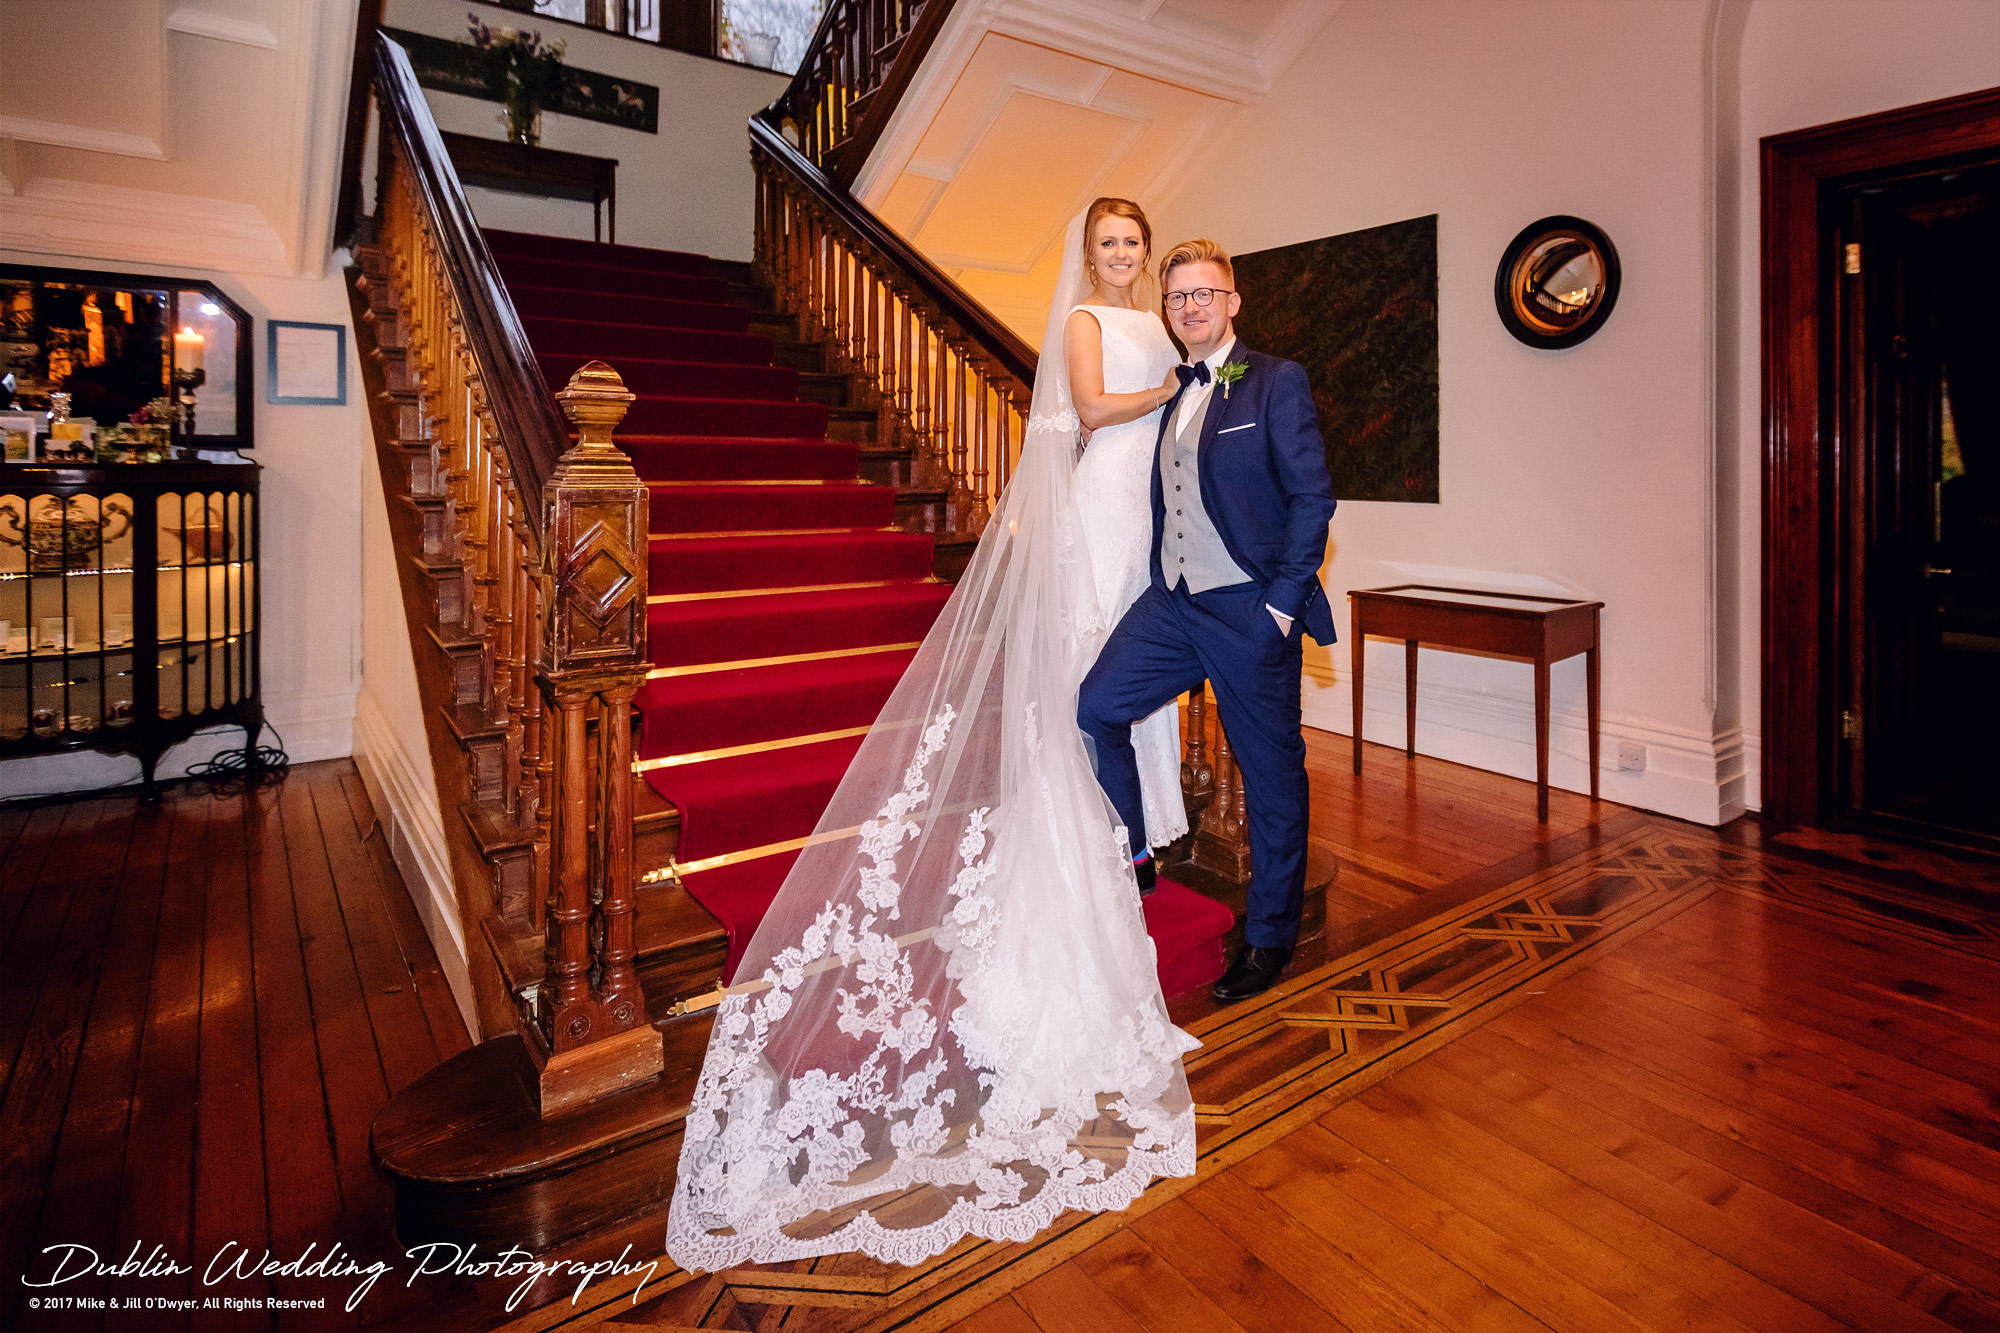 Tinakilly House Wedding Photographer: Bride & Groom at the staircase